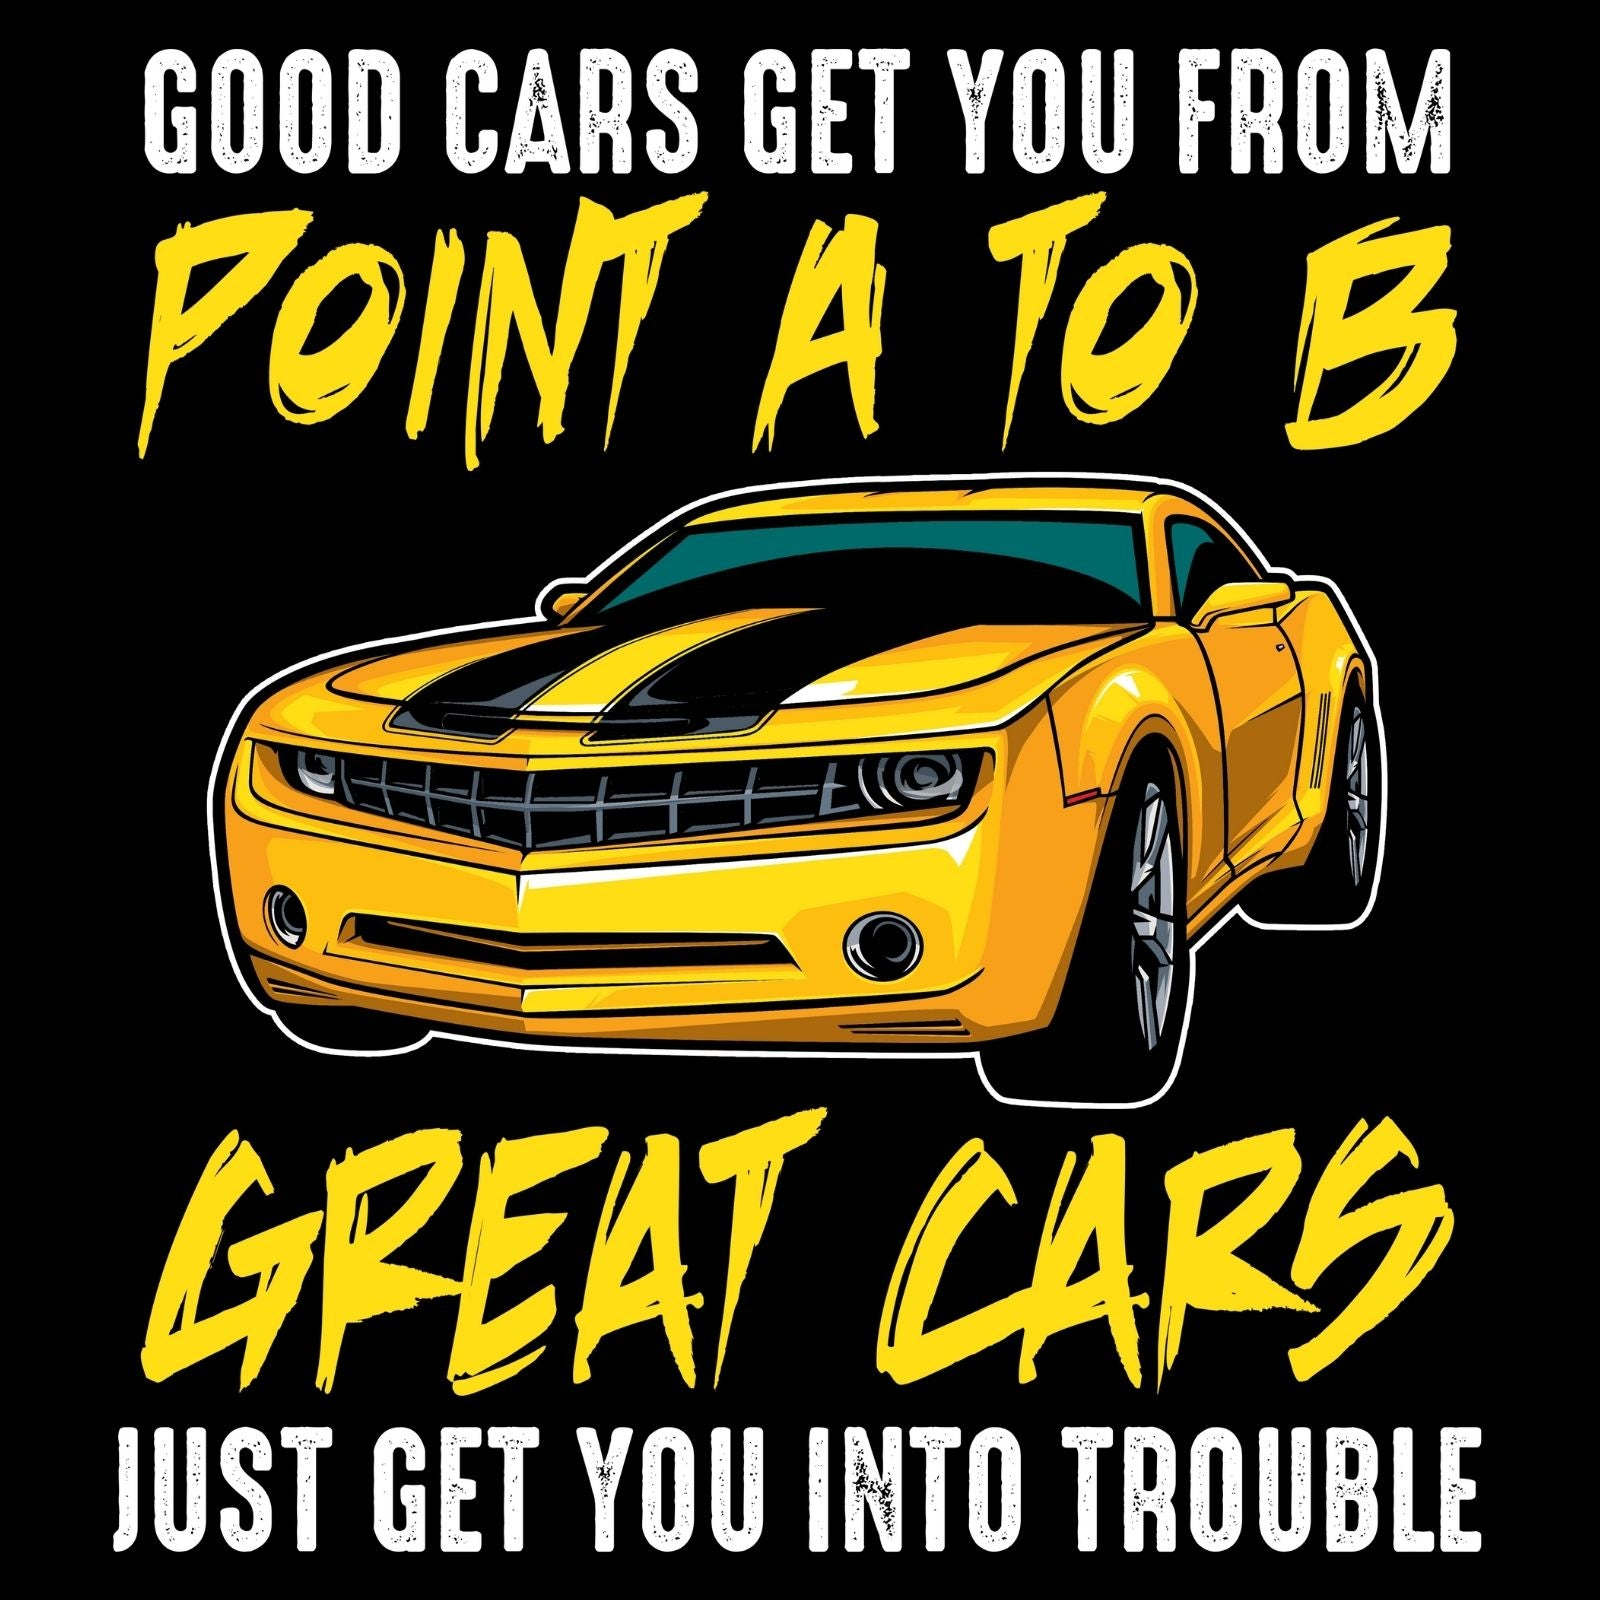 Good Cars Get You From Point A To B Great Cars Just Get You Into Trouble - Bastard Graphics